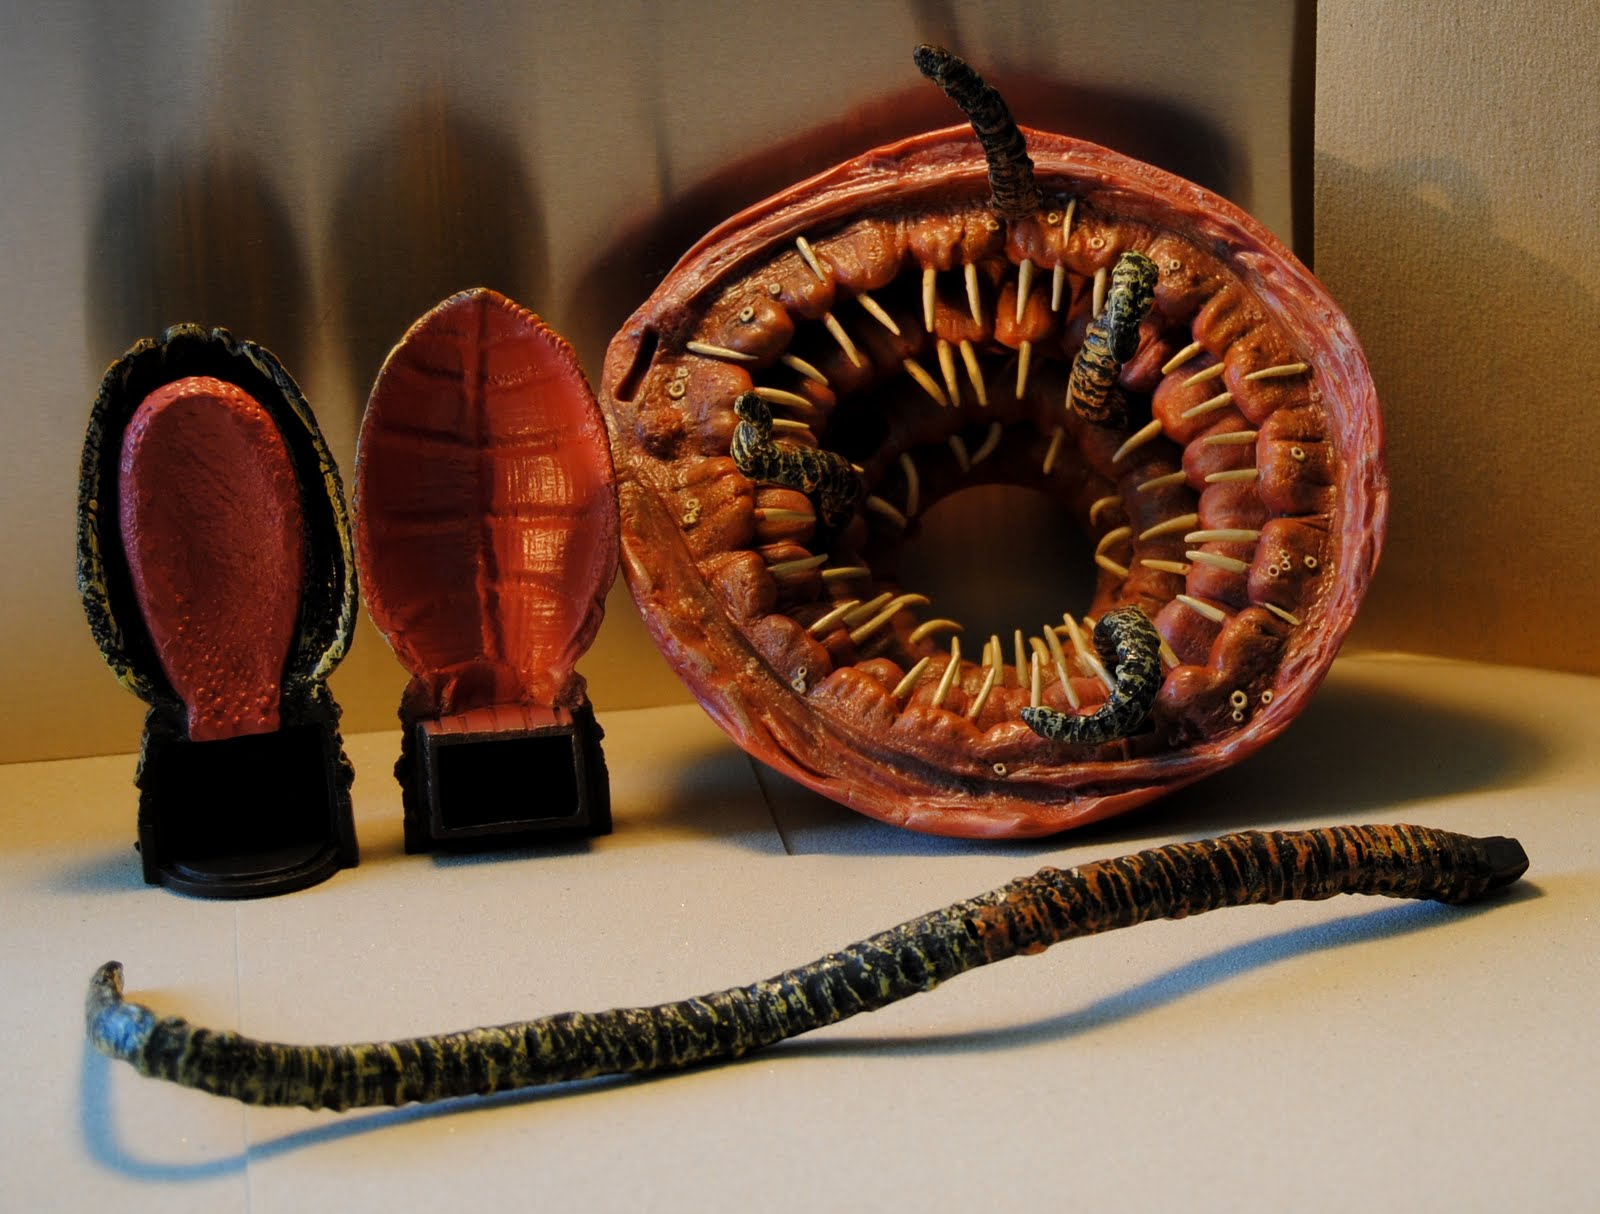 Sarlacc Toy Images - Reverse Search